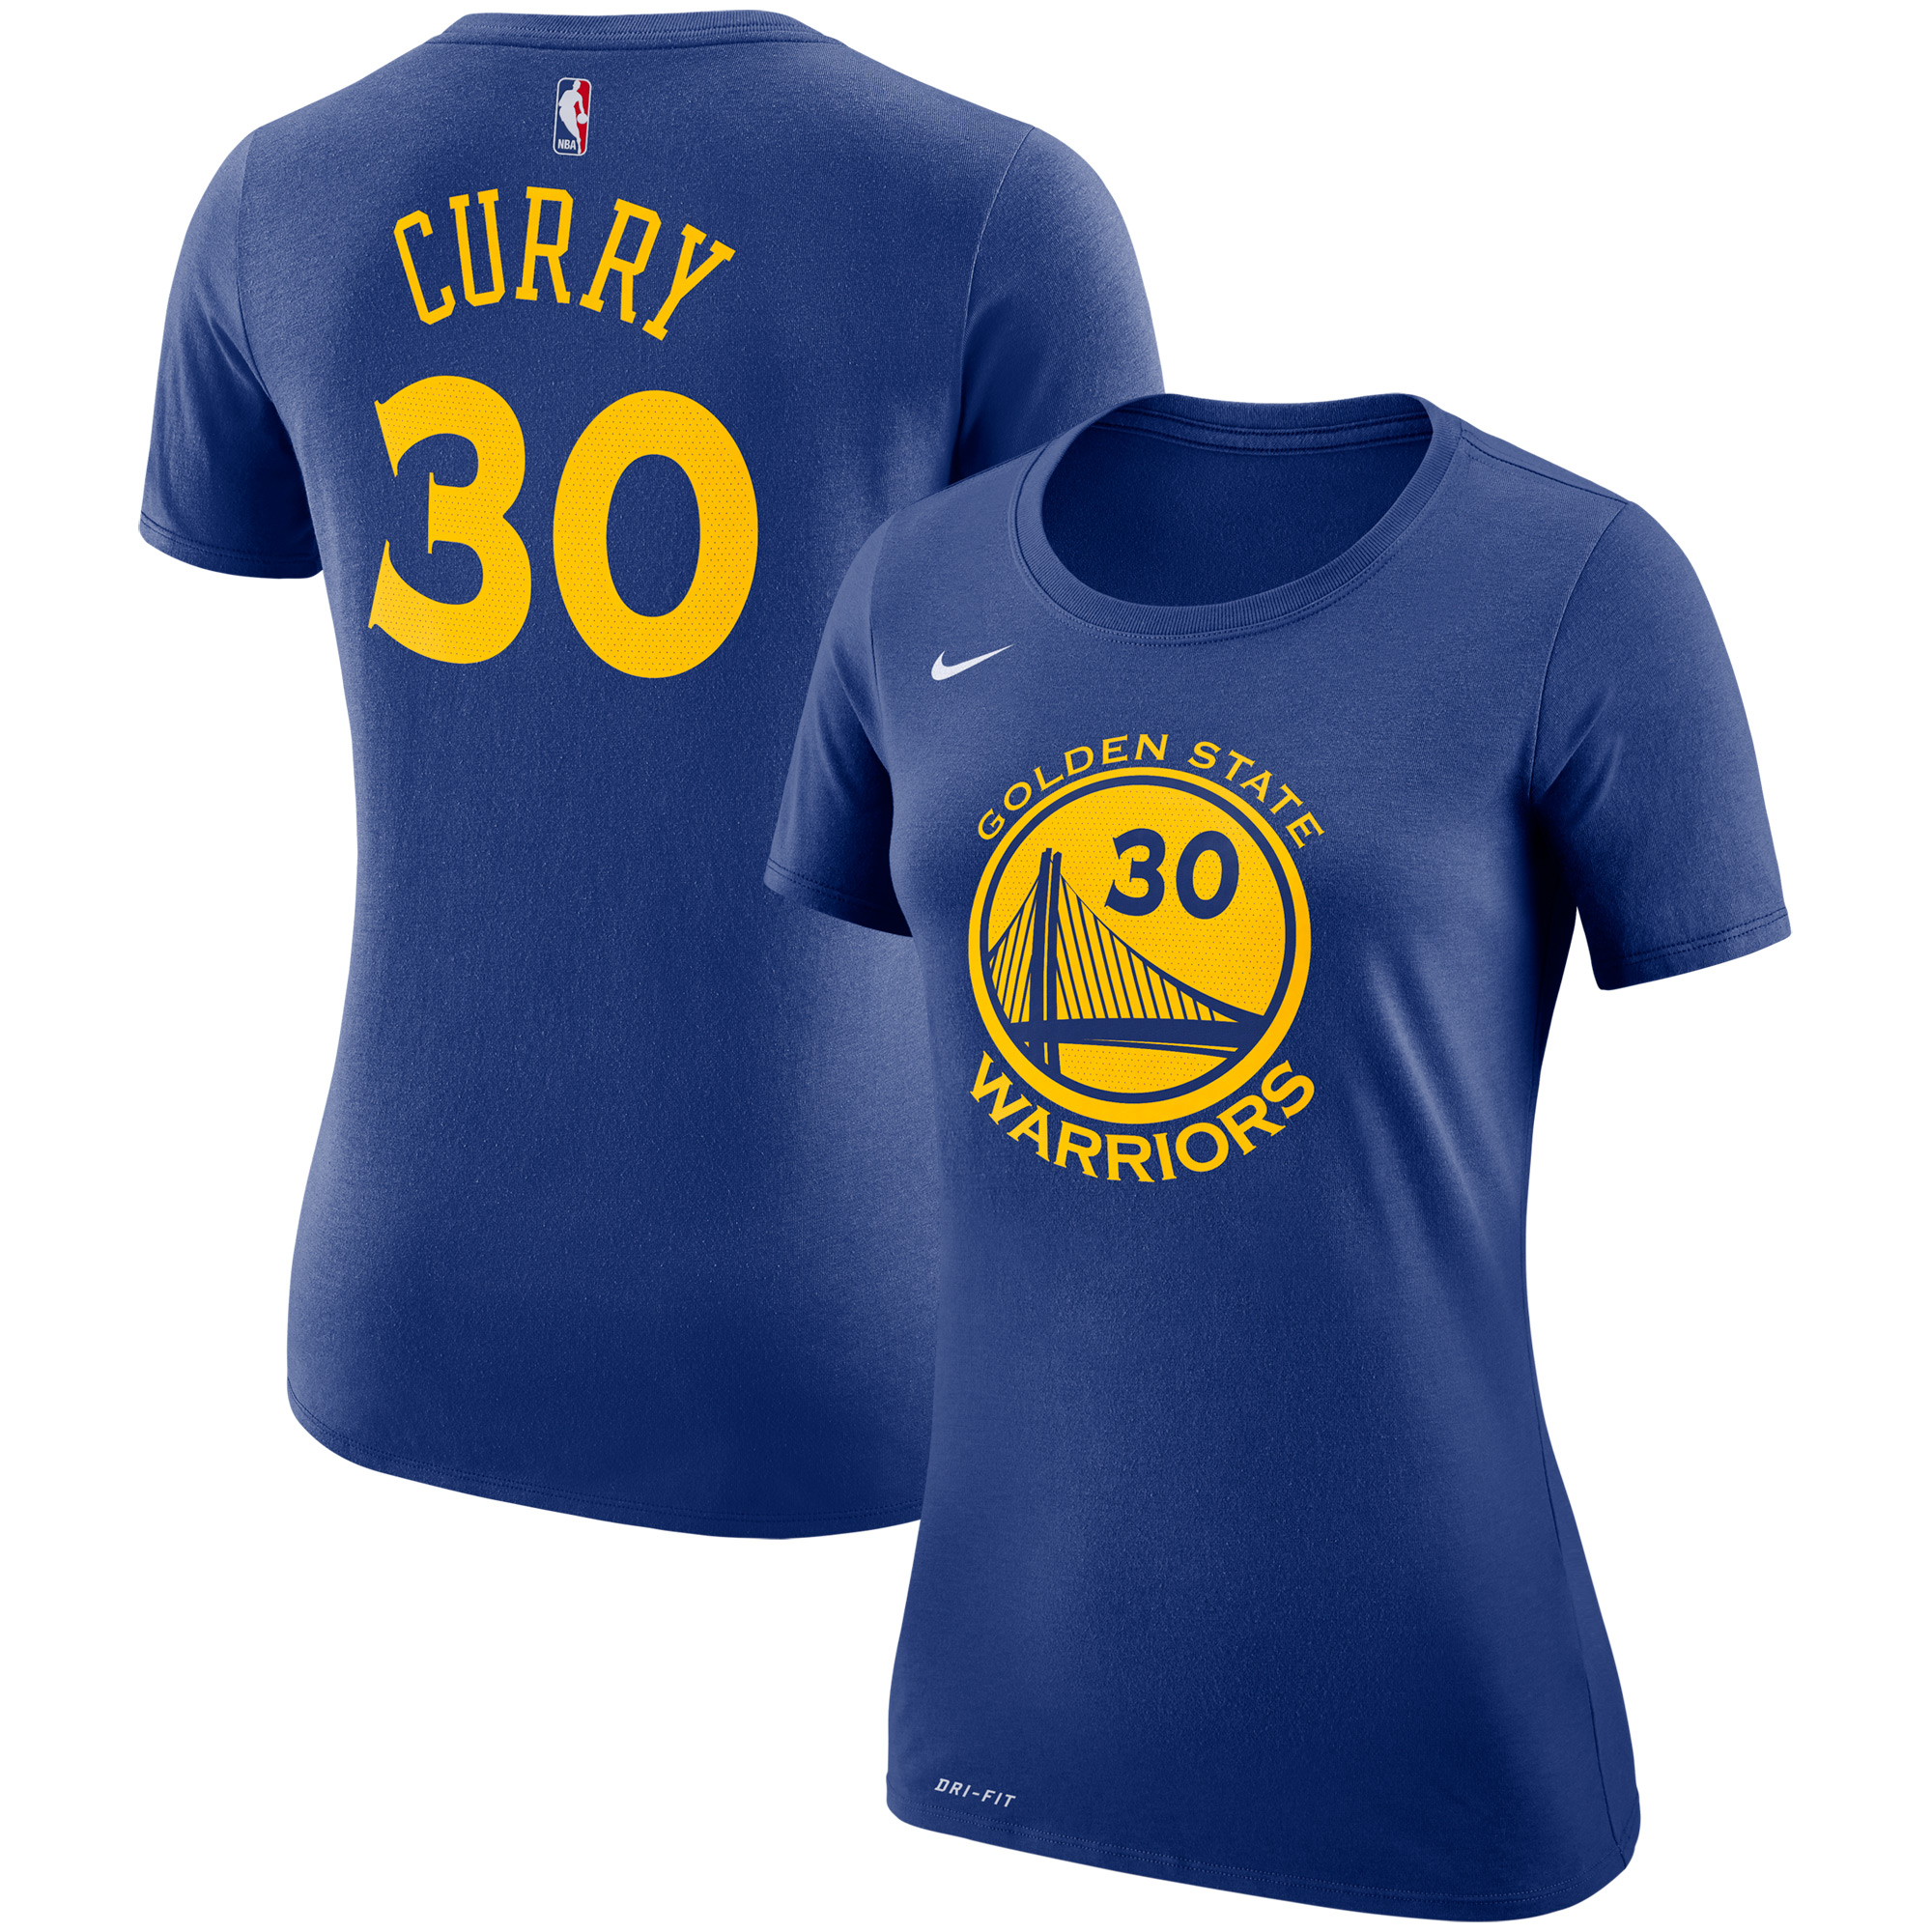 Stephen Curry Golden State Warriors Nike Women's Name & Number Performance T-Shirt - Royal